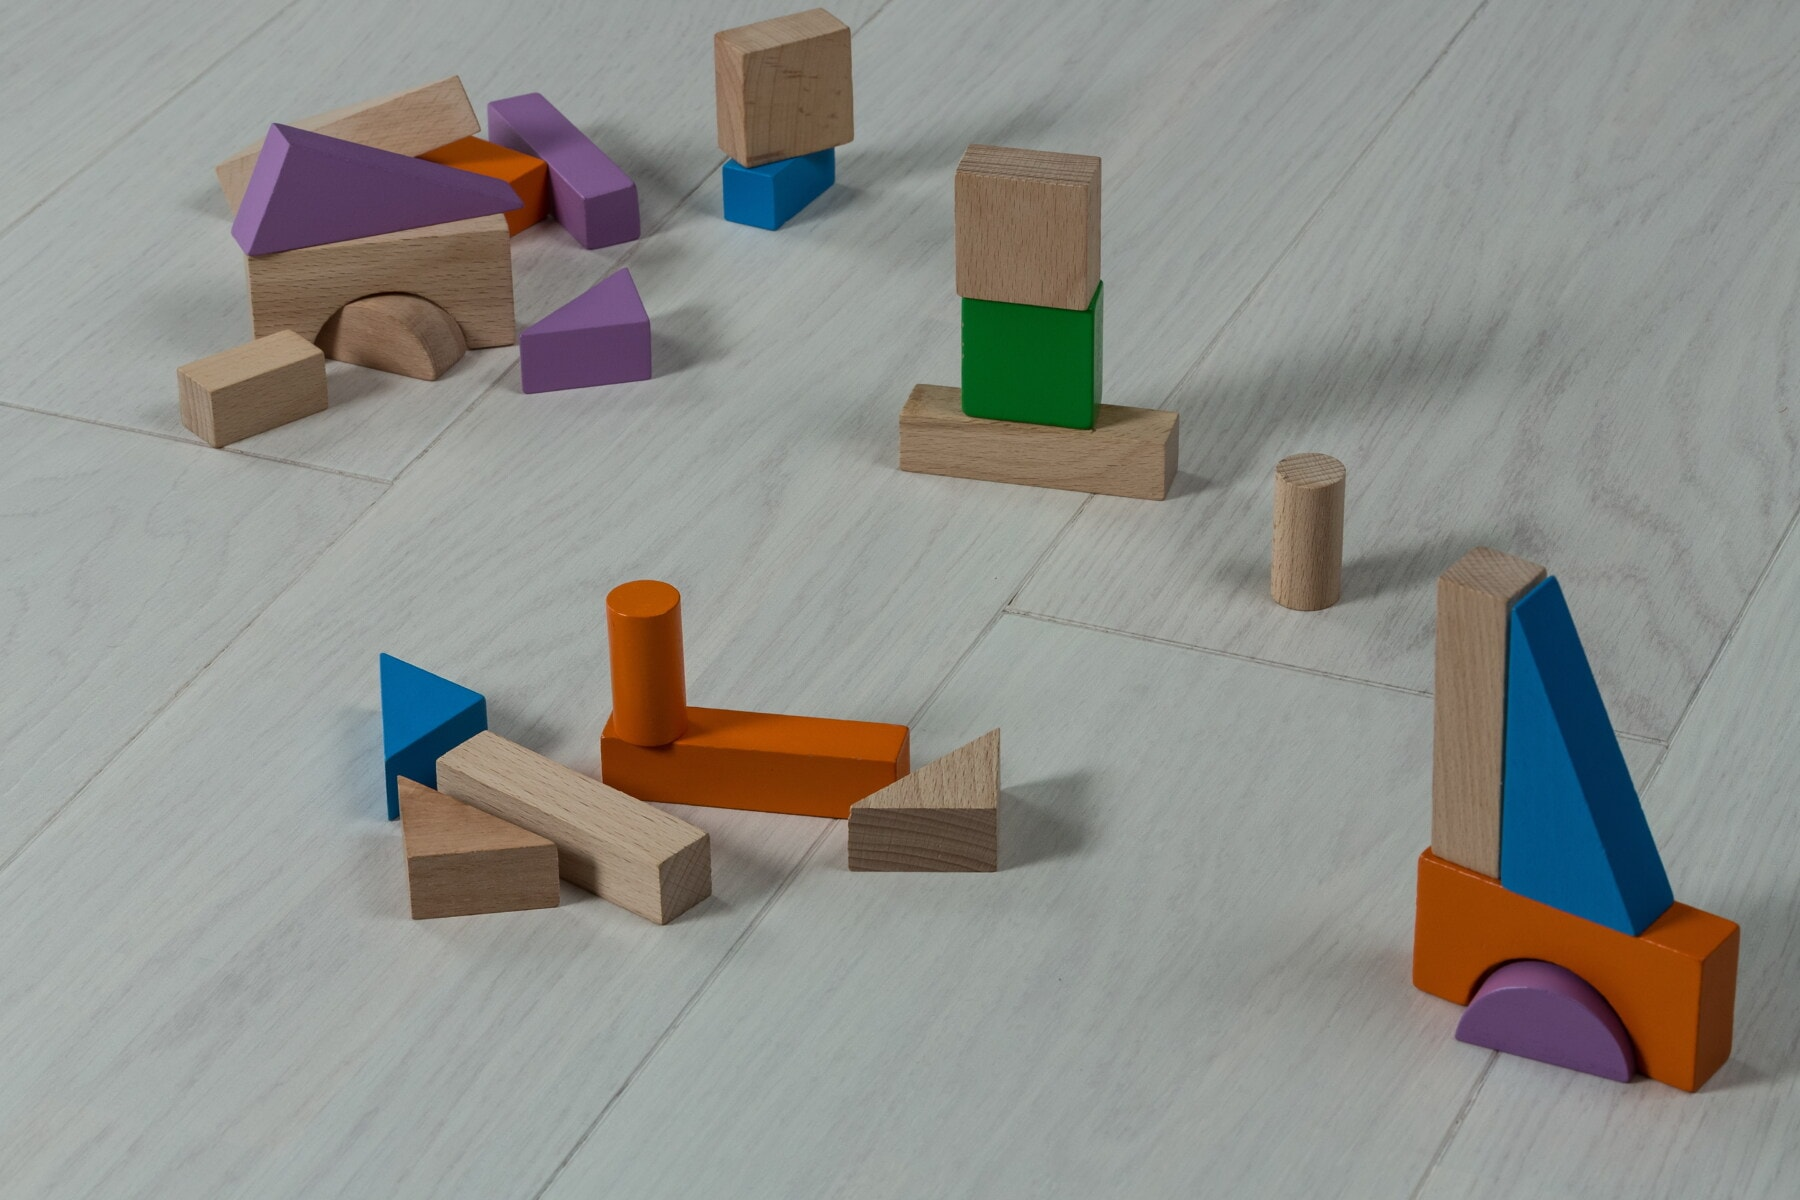 wooden, shape, toys, geometric, toy, floor, colorful, cube, wood, furniture